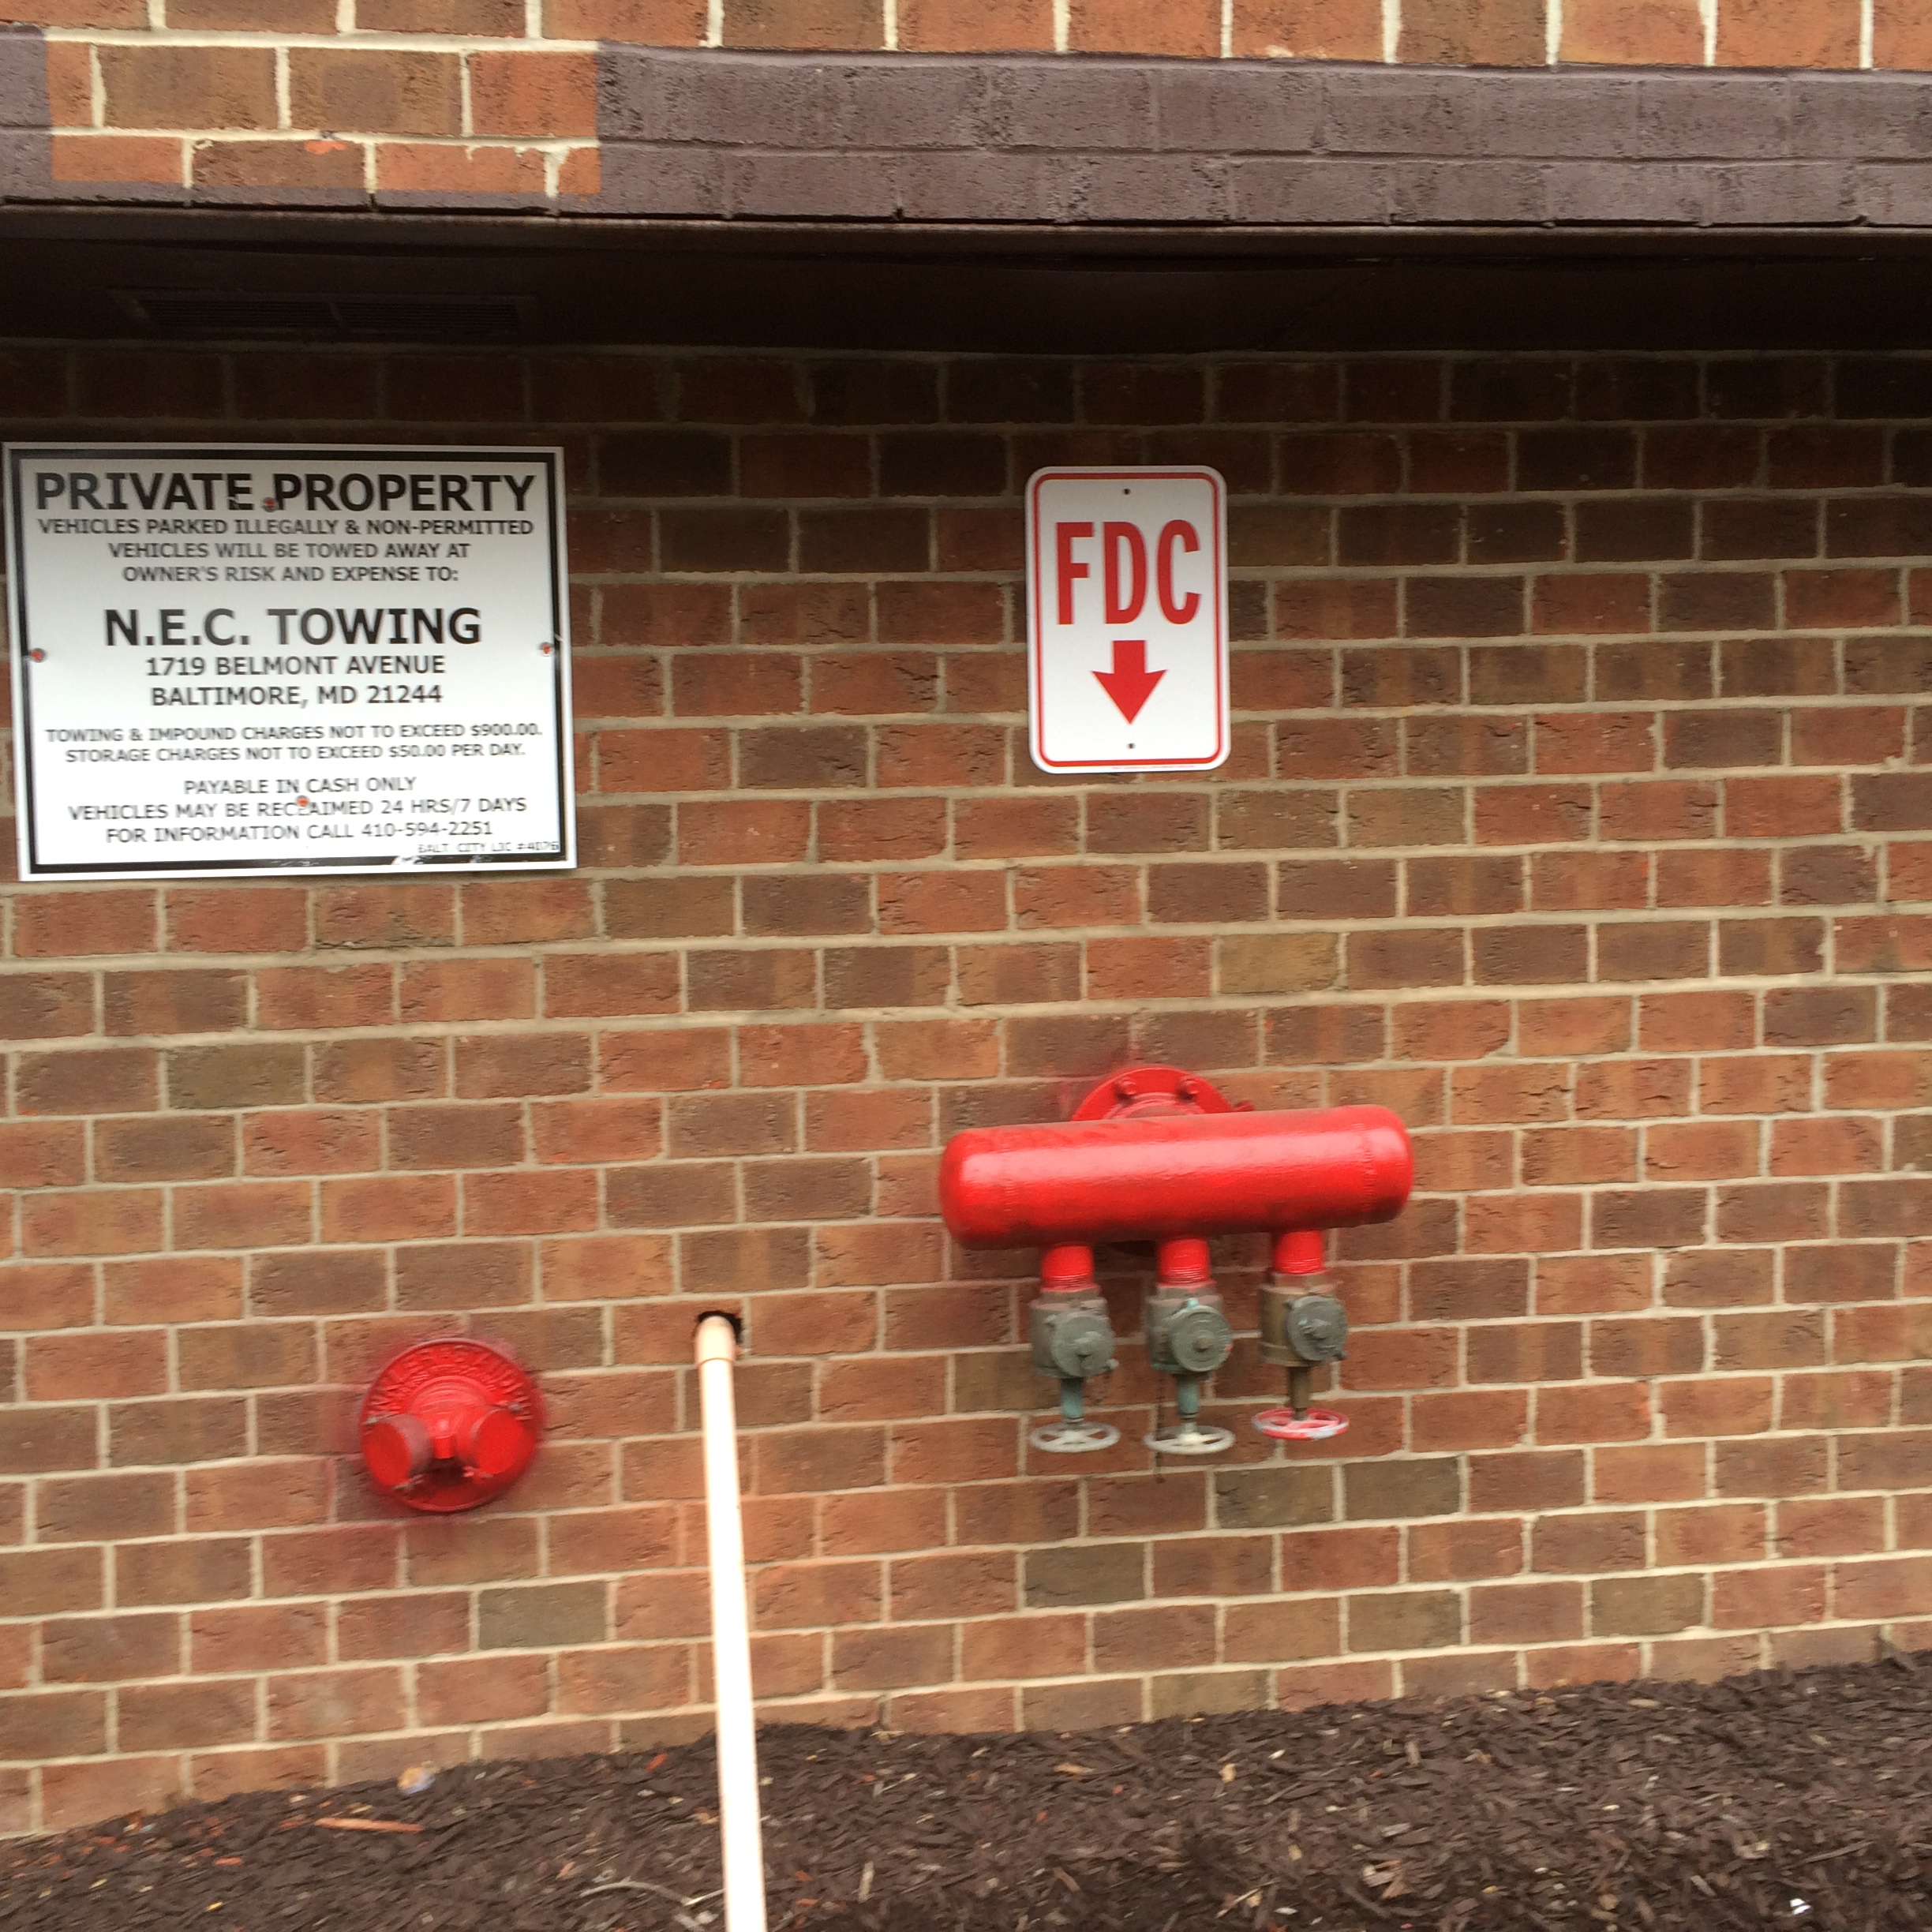 Inspection Testing And Maintenance Of Fire Protection Systems Relevant Or Not Futrell Fire Consult Design